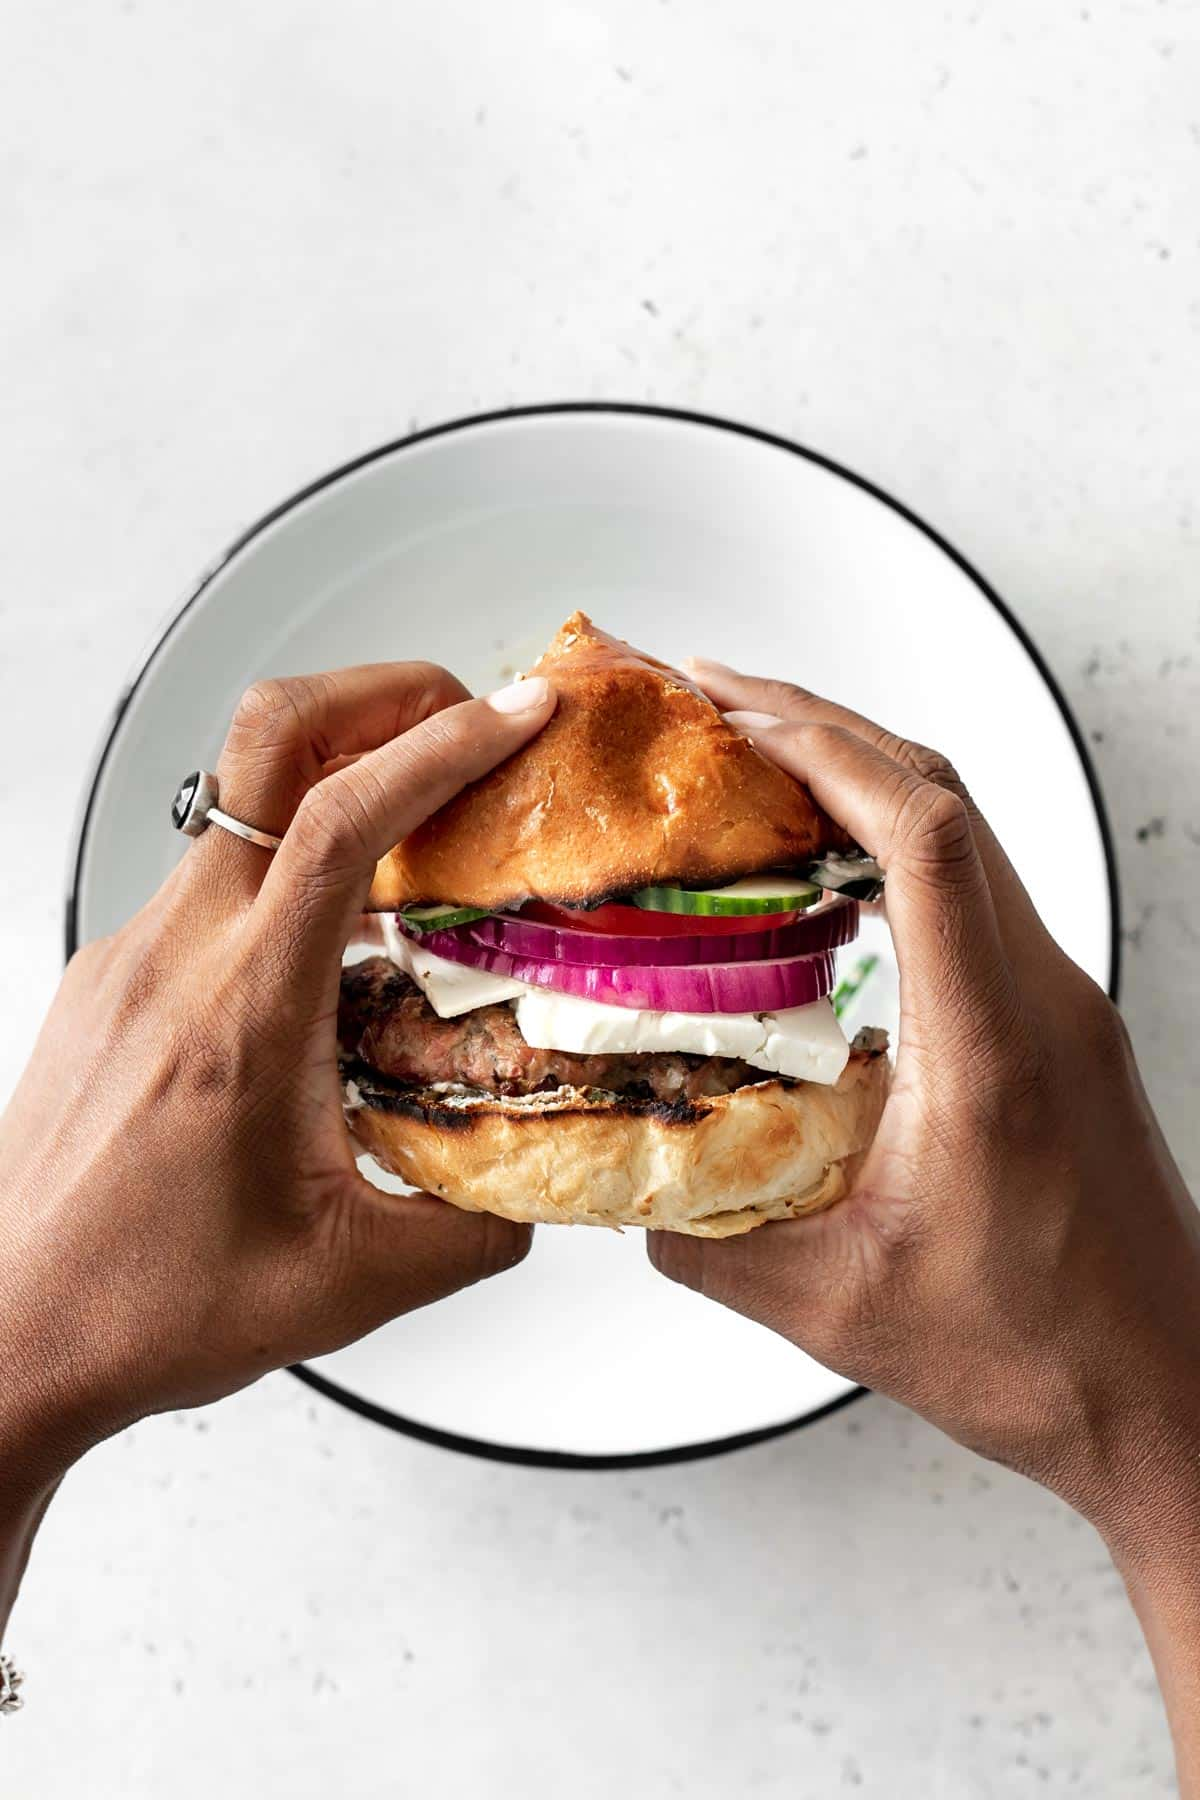 Hands holding a Turkey Burger over a white dish